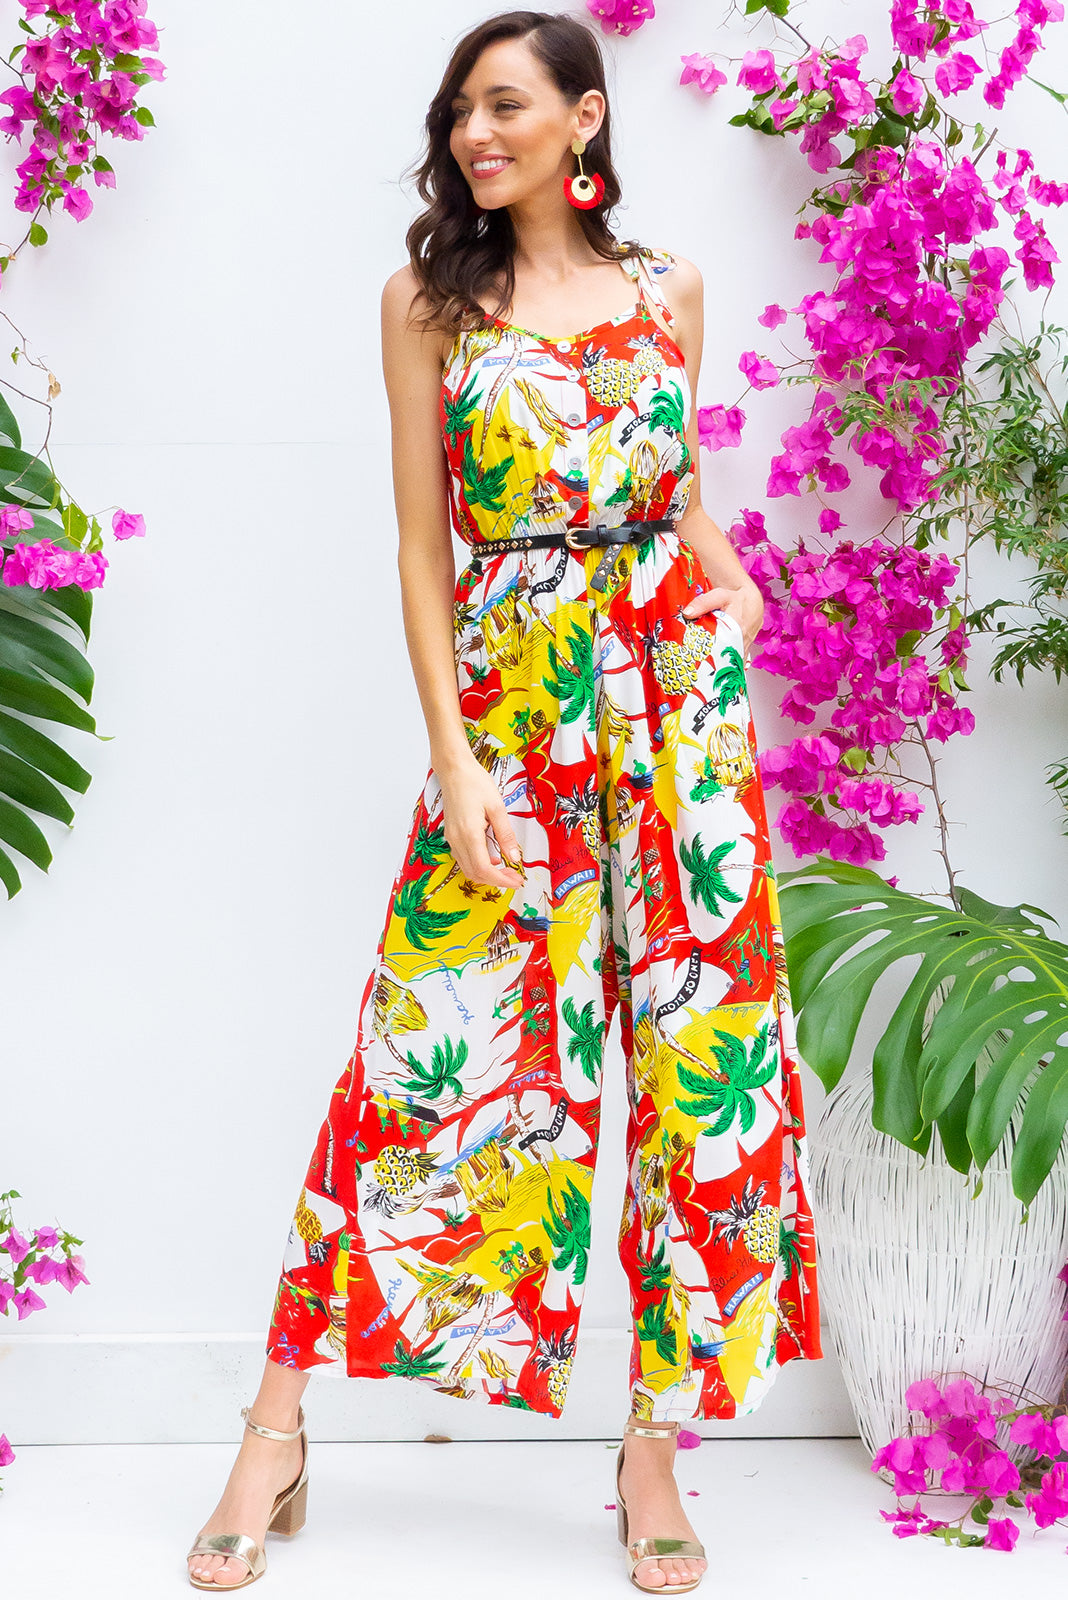 Sweet Caroline Postcard Red jumpsuit features deep side pockets, an elastic waist and adjustable strap in a red, white and yellow based tropical print on a woven rayon nylon blend